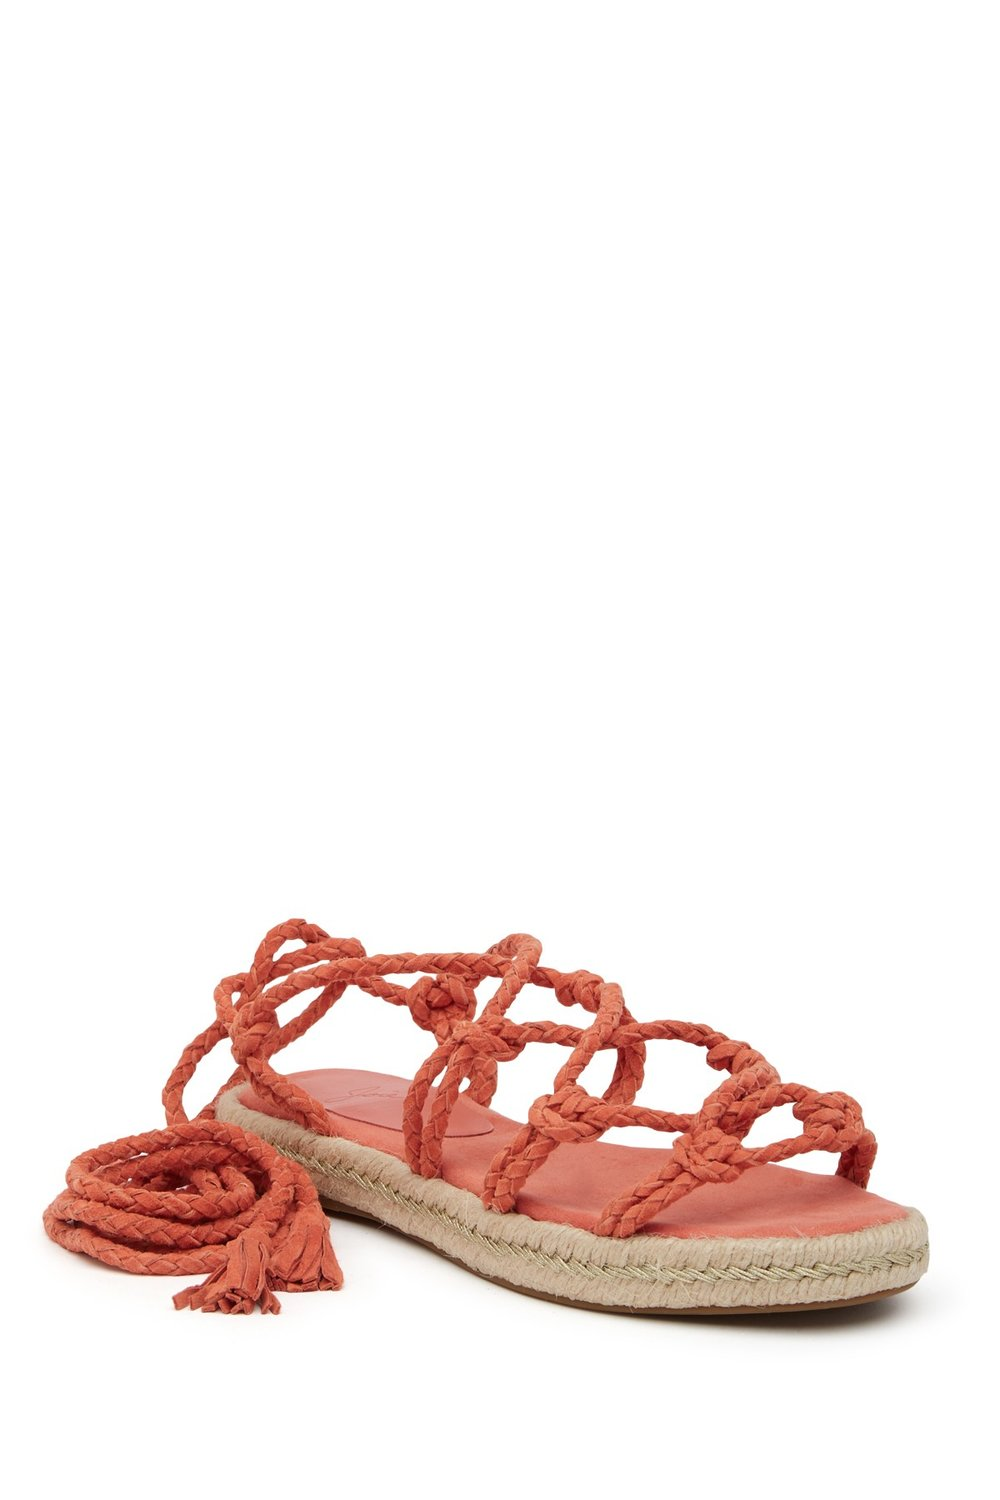 The fearless among us will rock these lace up espadrilles with the romper above. Monochromatic for the win, I say! Or use these as your pop of color. Just right for a more bohemian style. Love them with white jeans....   Joie Ceasar Ghillie Lace Espadrille Sandal. Nordstrom Rack. Was: $228. Now: $99.